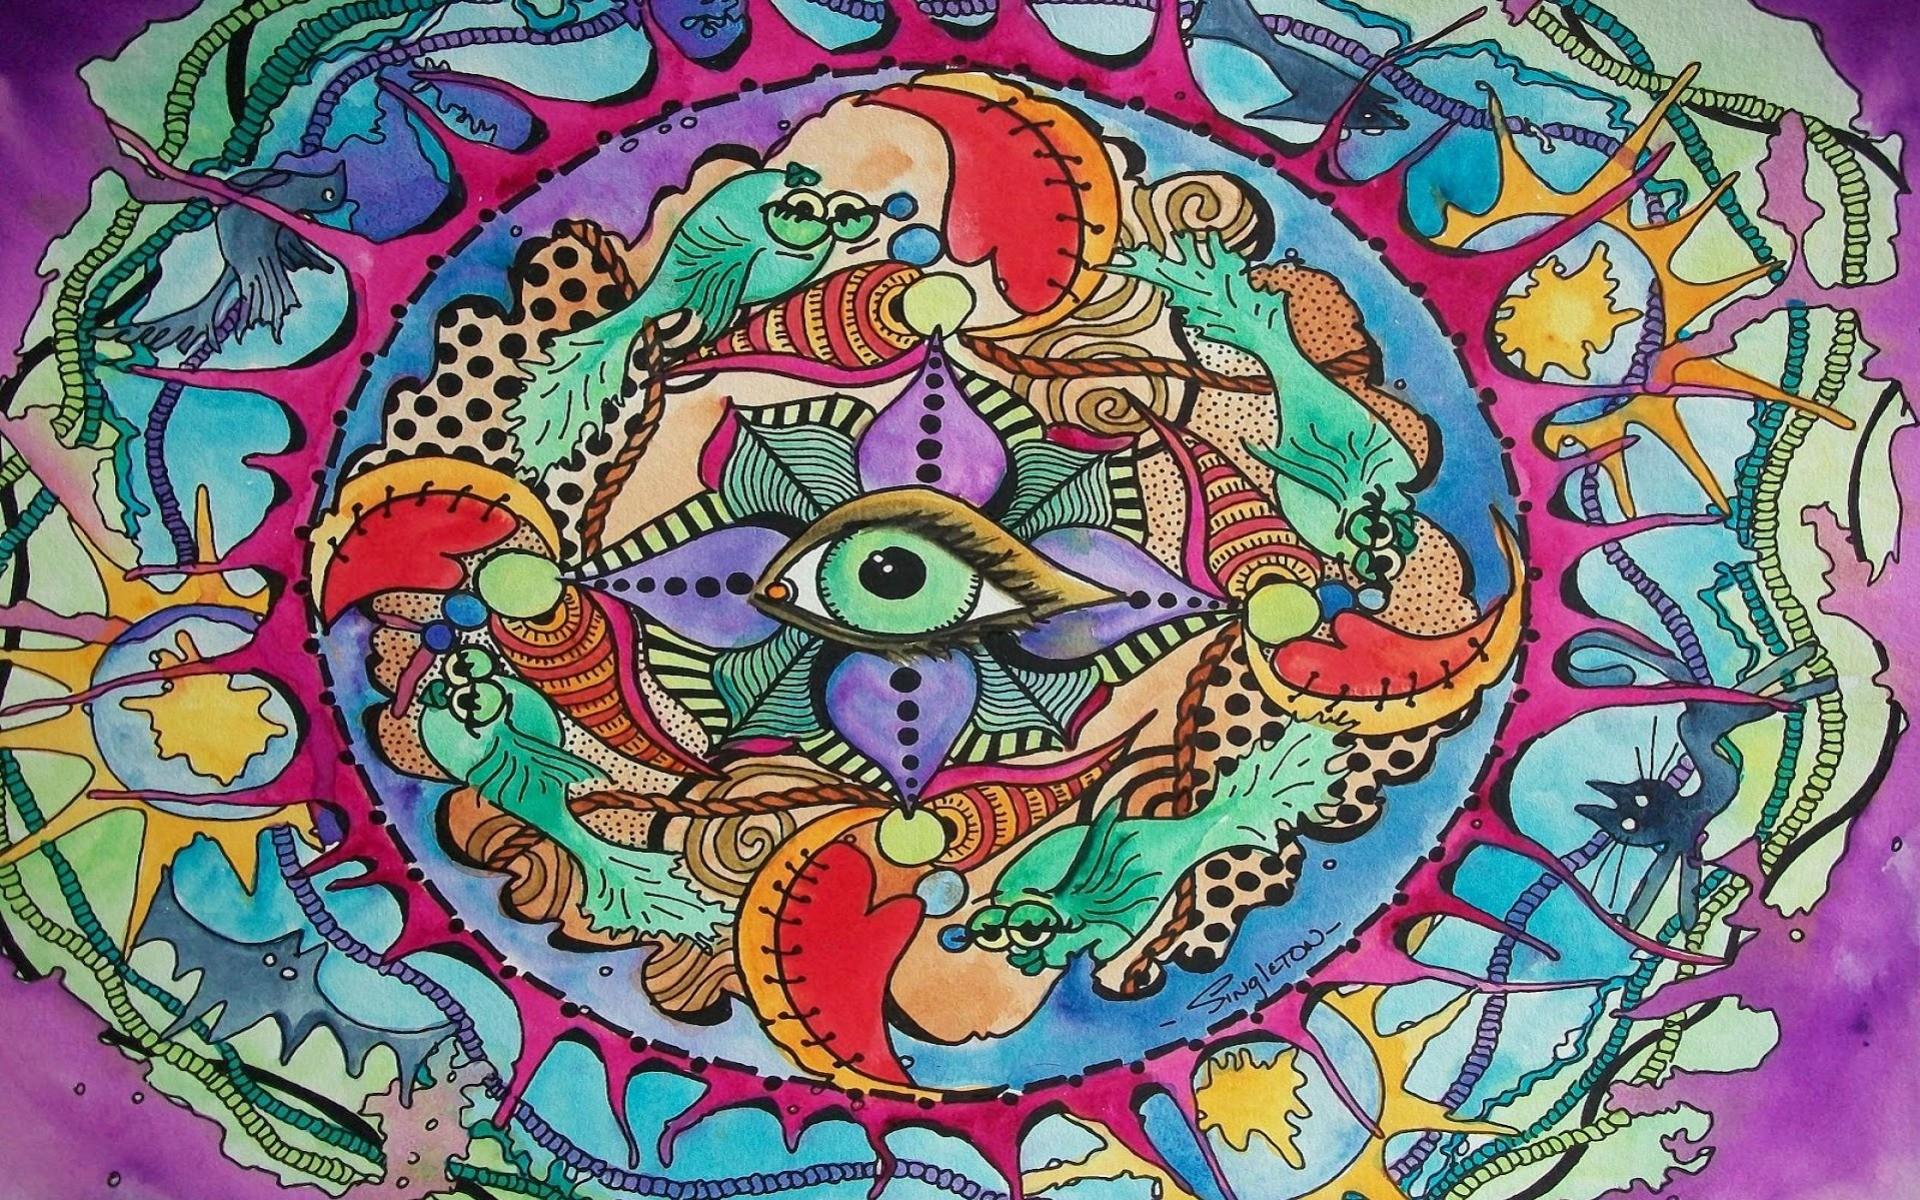 Trippy Hippie Wallpaper Hippie Artwork 946205 Hd Wallpaper